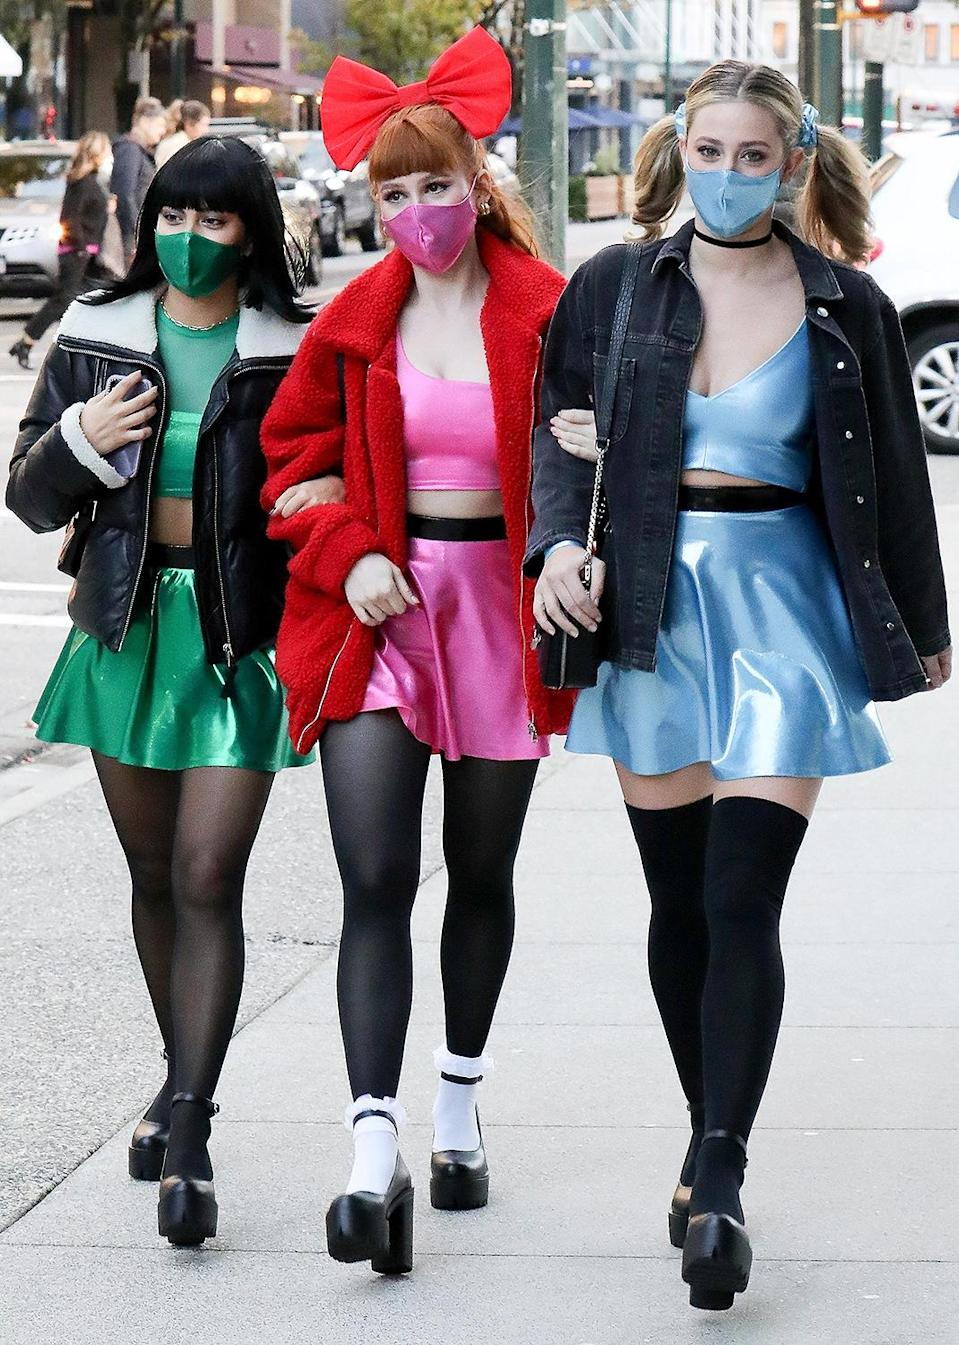 <p>Lili Reinhart, Camila Mendes and Madelaine Petsch showed off their Powerpuff Girls group costume for Halloween in Vancouver.</p>